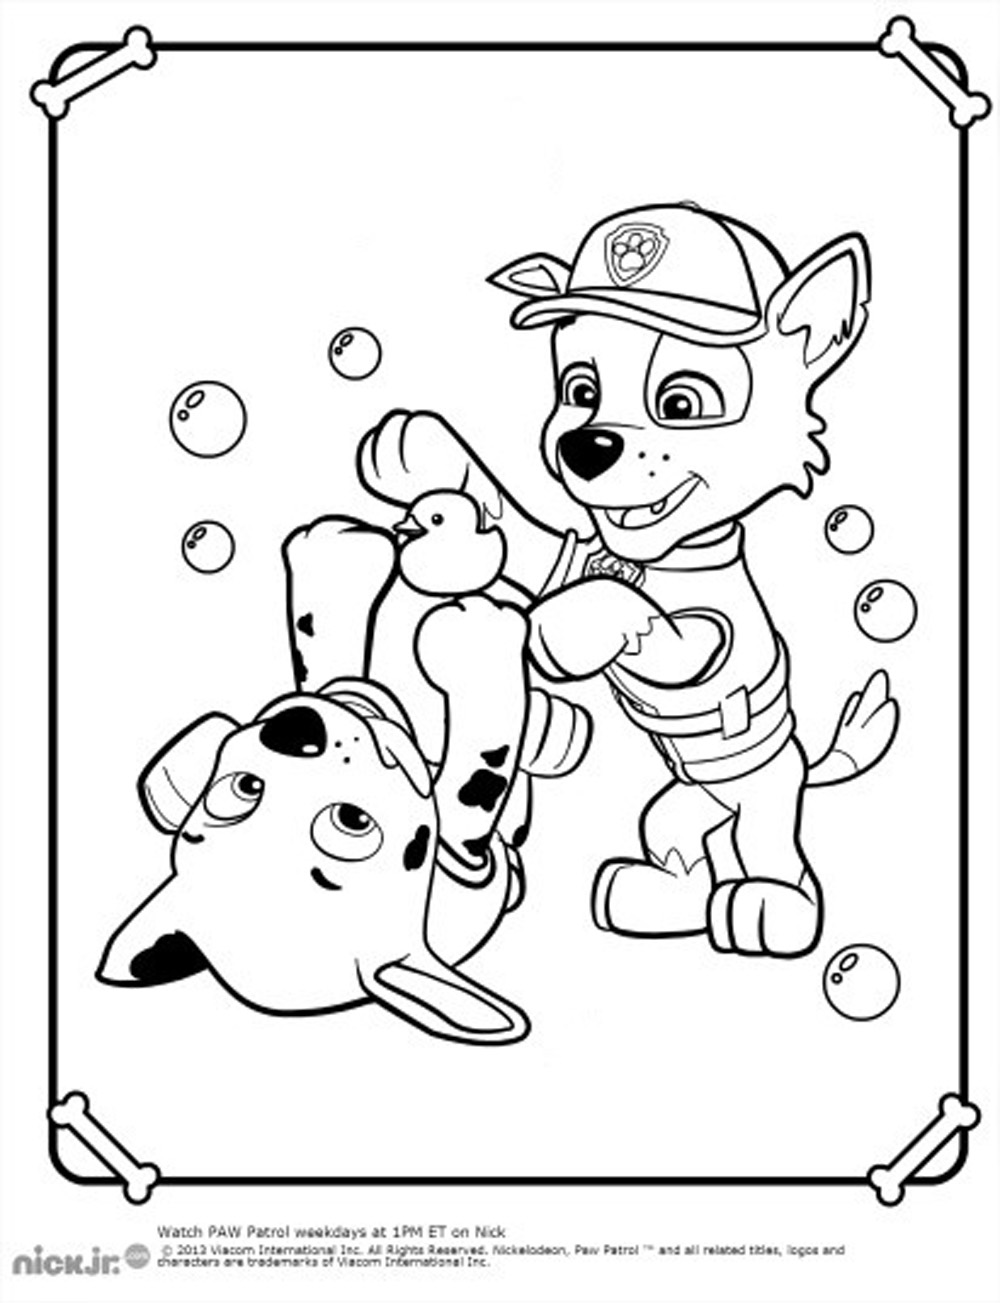 paw patrol coloring book paw patrol coloring pages printable free coloring sheets patrol book paw coloring